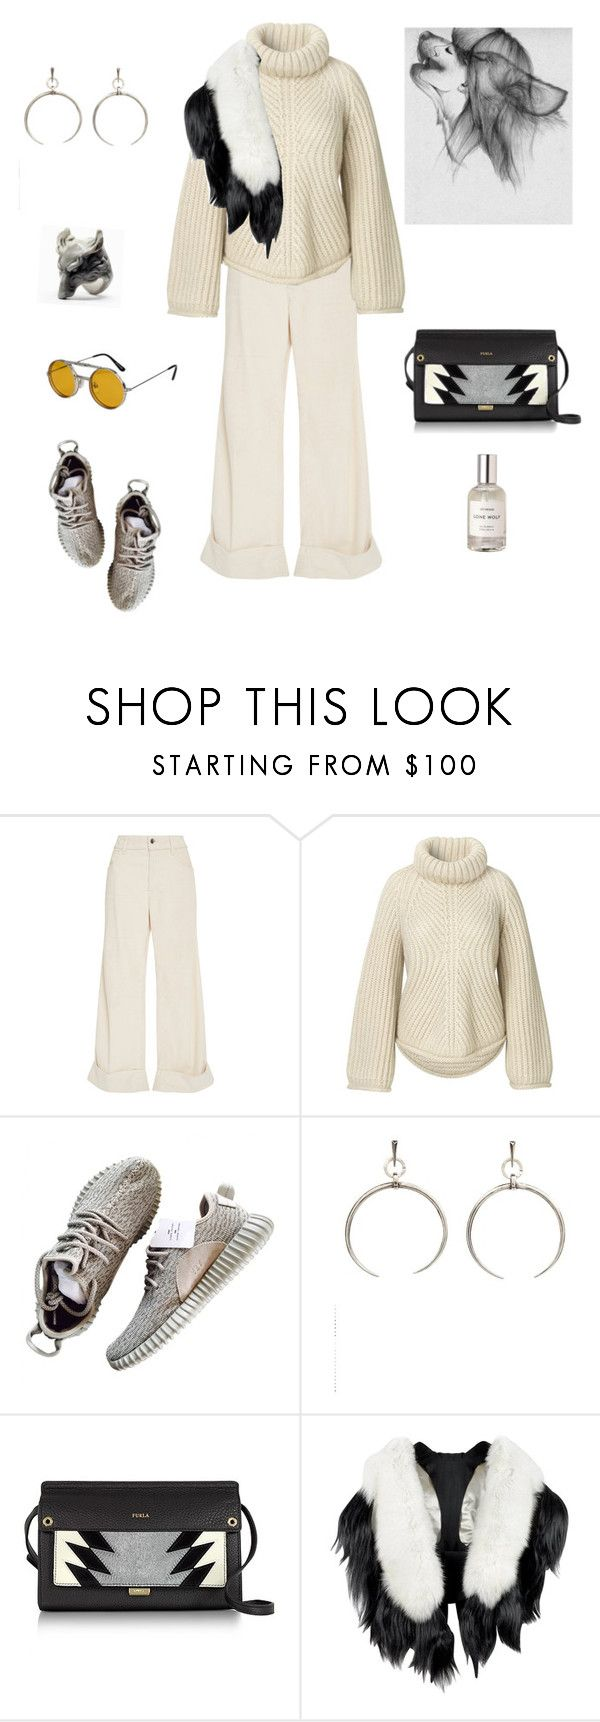 """Time For Yourself"" by futuraocculto ❤ liked on Polyvore featuring The Seafarer, Luv Aj, Furla, Fearfur and Spitfire"